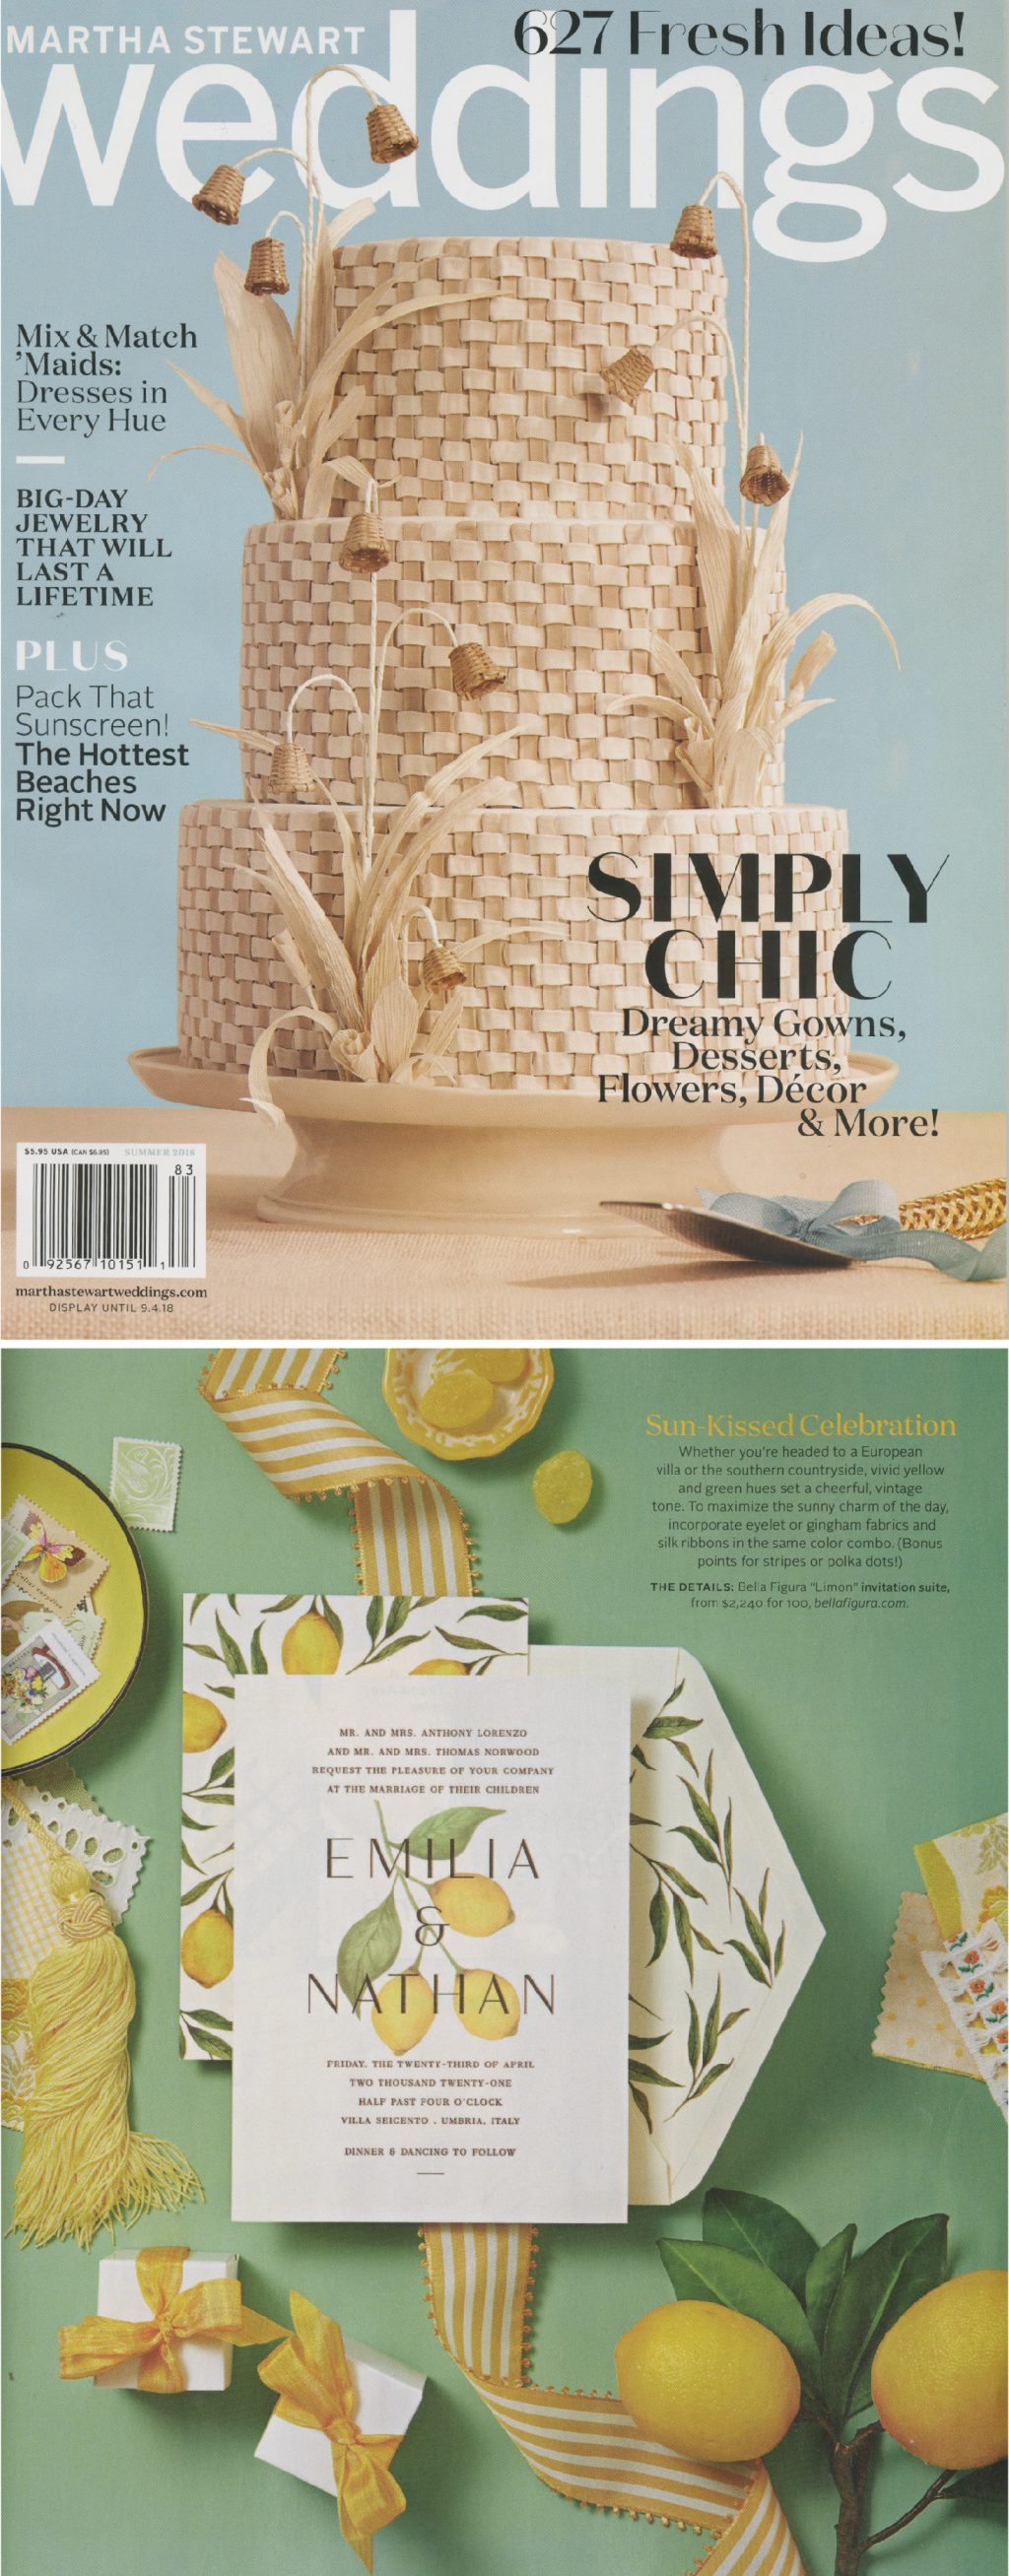 LIMON WEDDING INVITATION BY BELLA FIGURA FEATURED IN MARTHA STEWART WEDDINGS